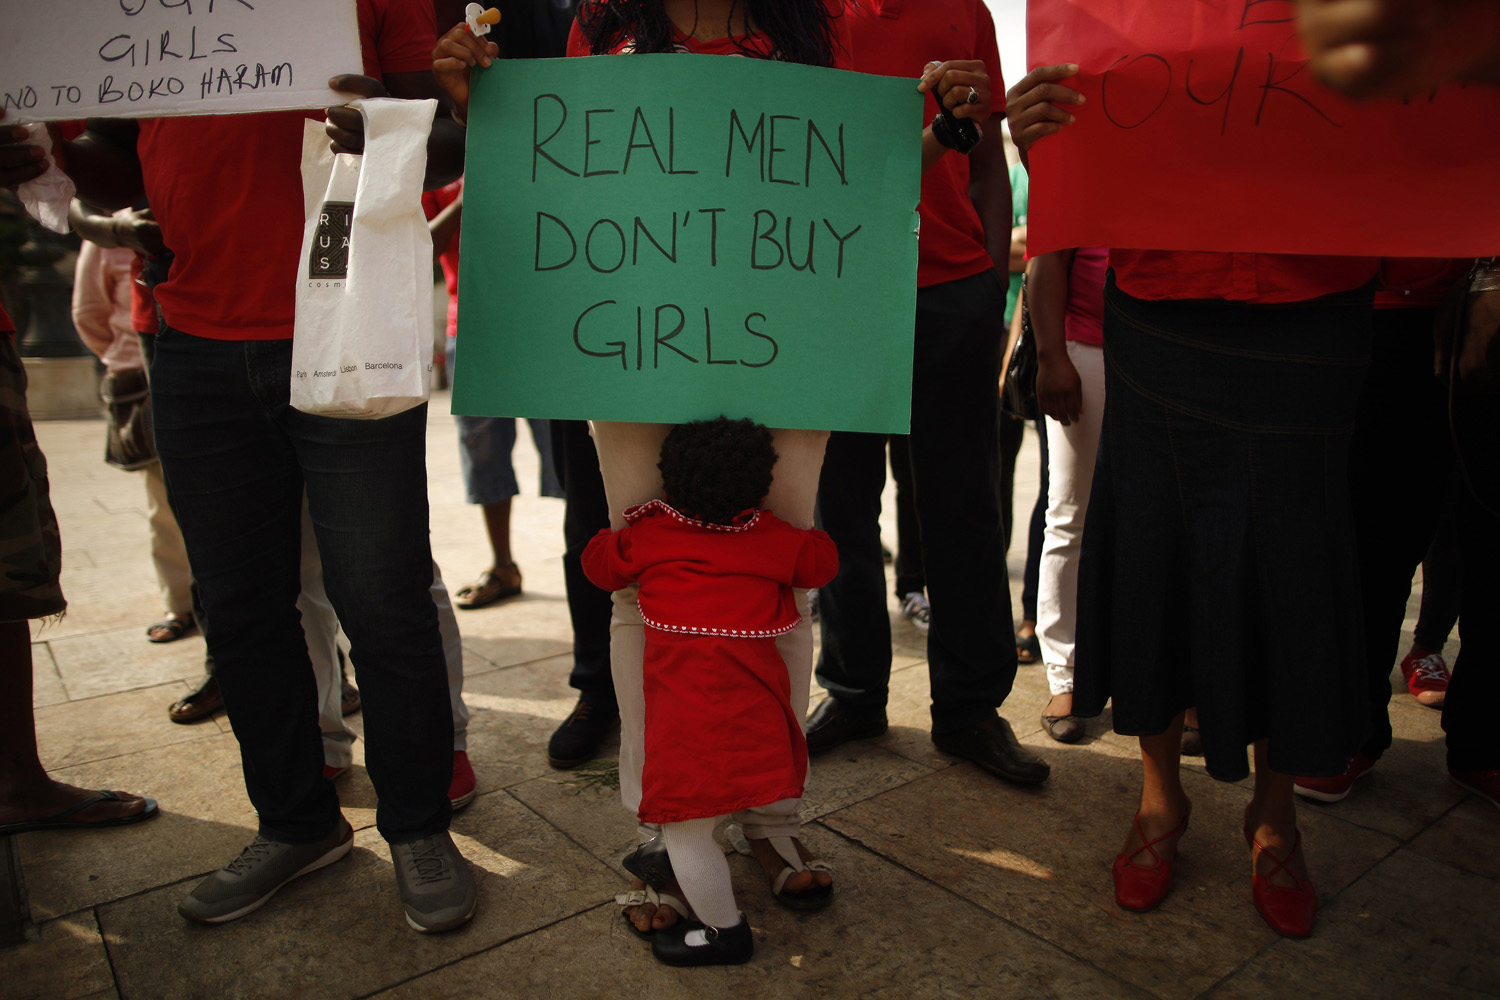 May 13, 2014. Nigerians take part in a protest, called by Malaga's Nigerian women Association, for the release of the abducted secondary school girls in the remote village of Chibok in Nigeria, at La Merced square in Malaga, southern Spain.